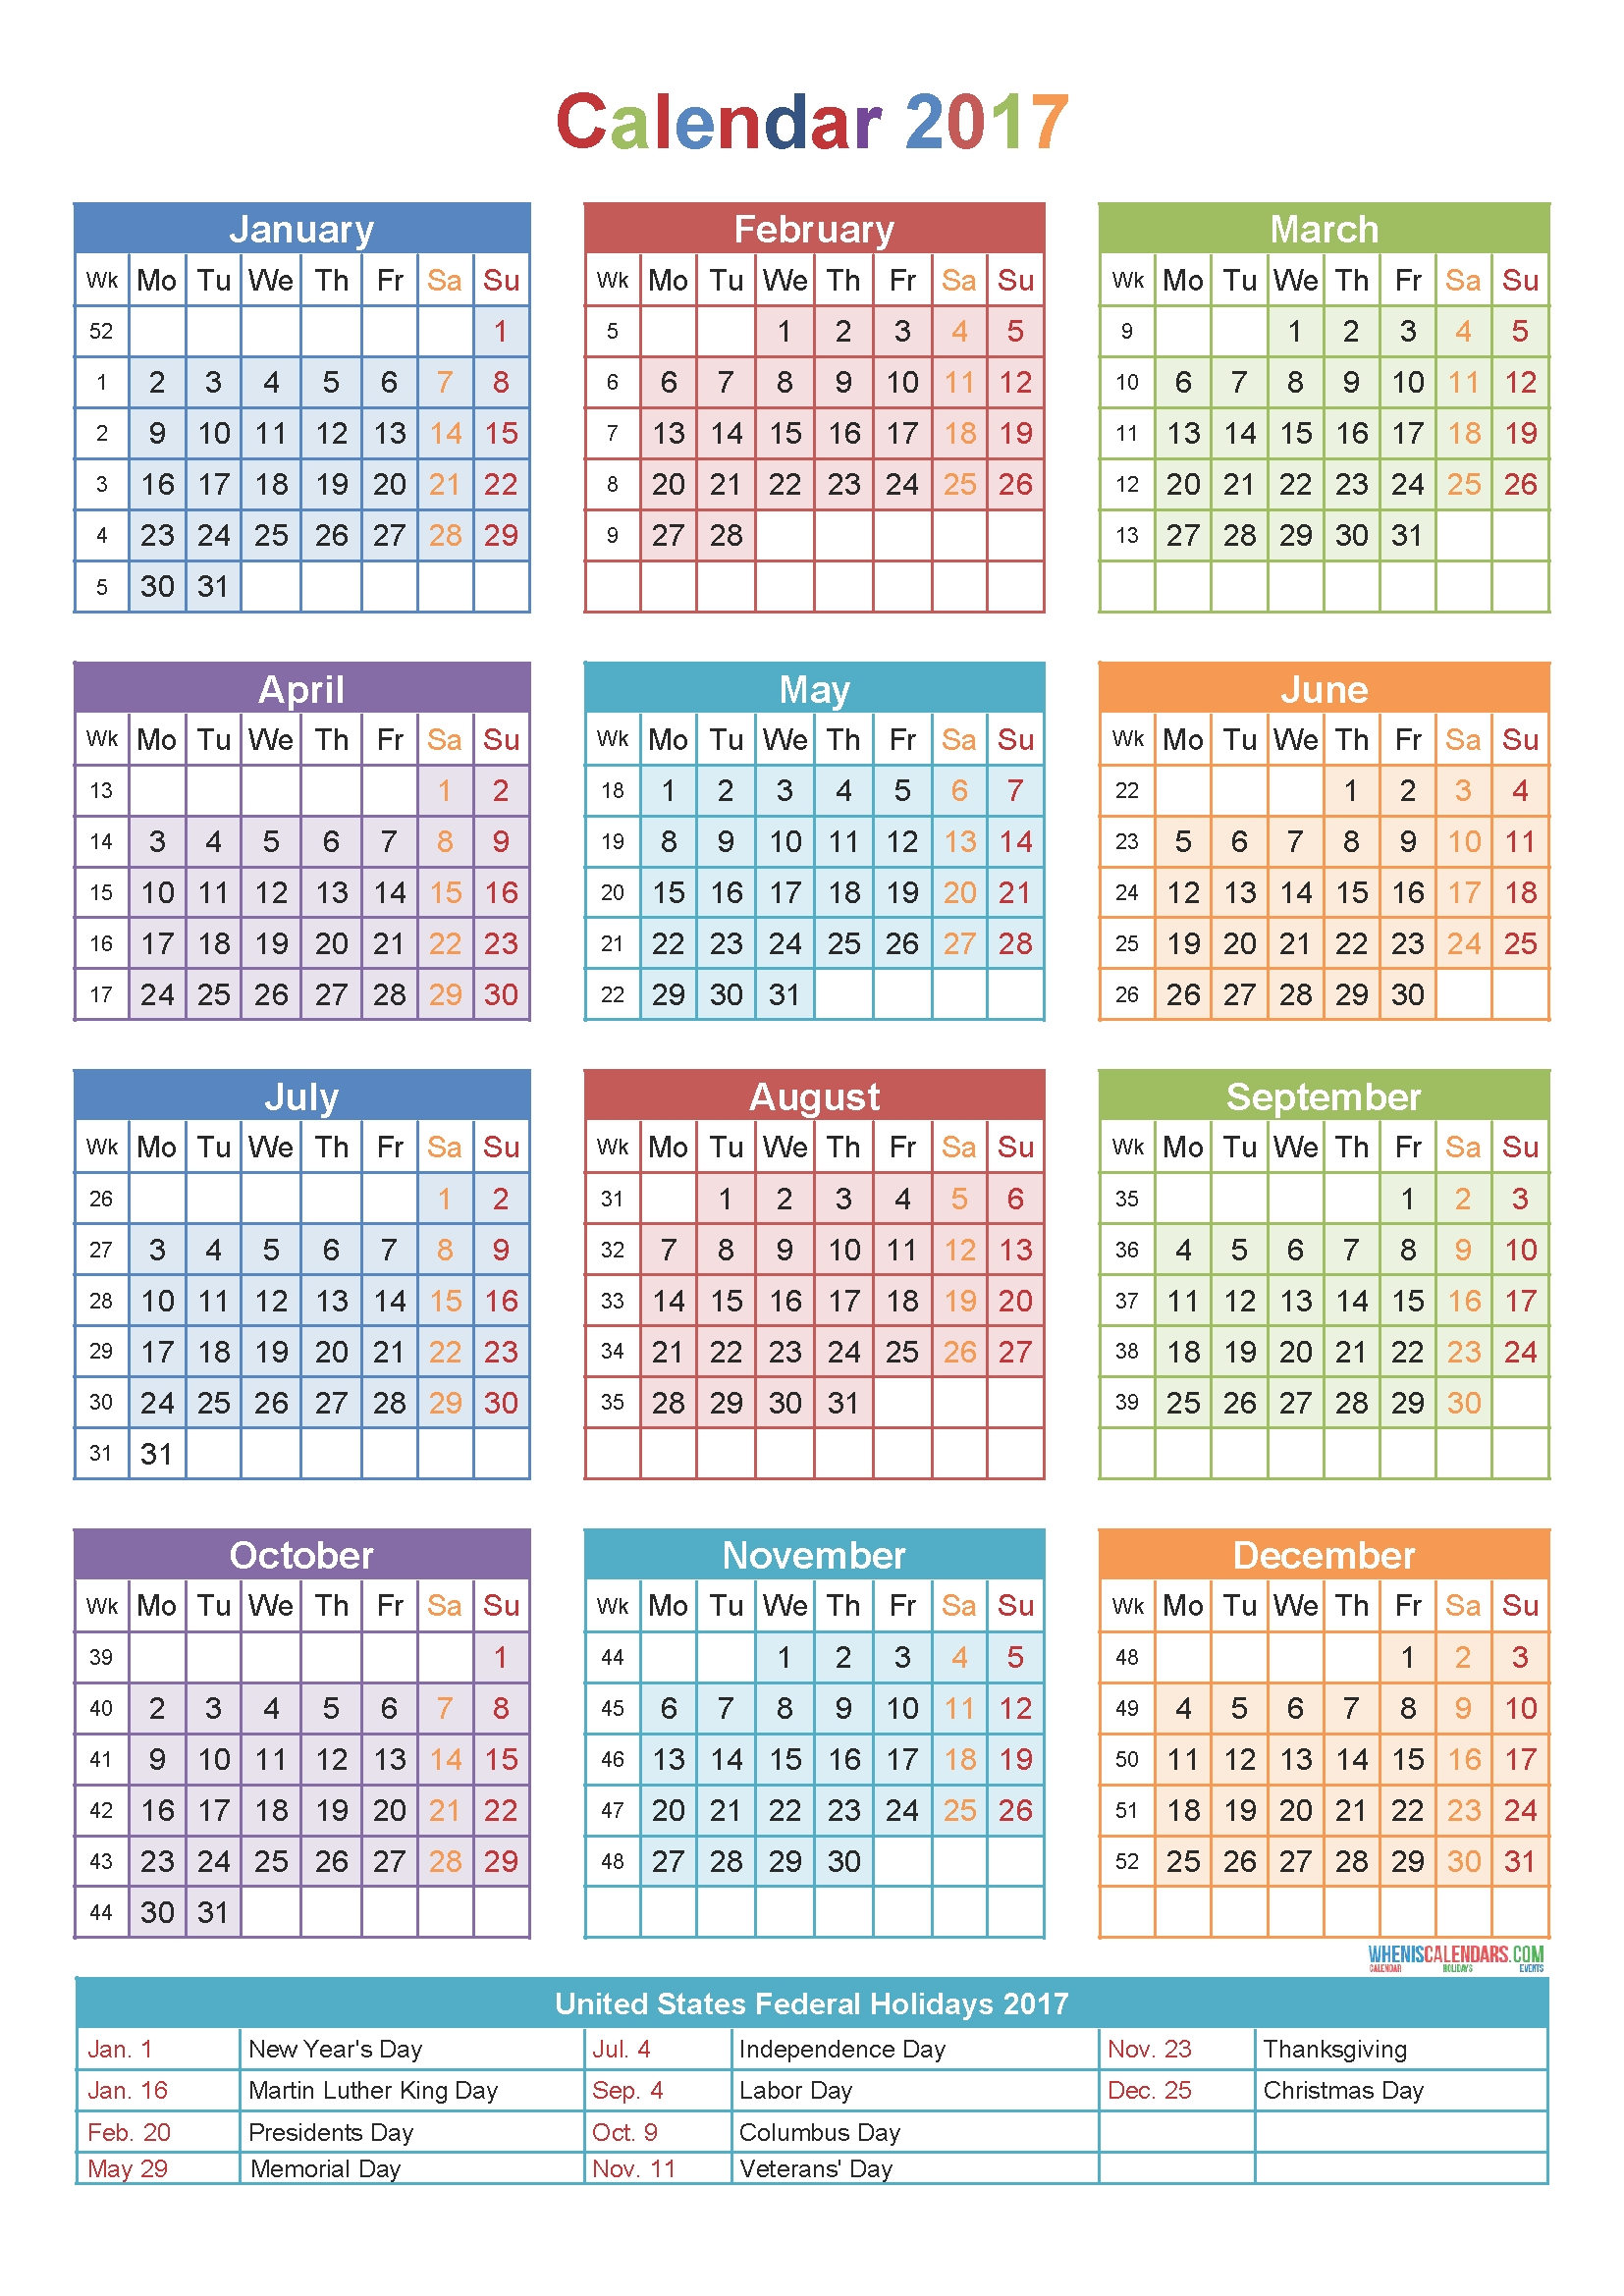 Weekly Number Calendar 2017 Printable 2017 Calendars3abry